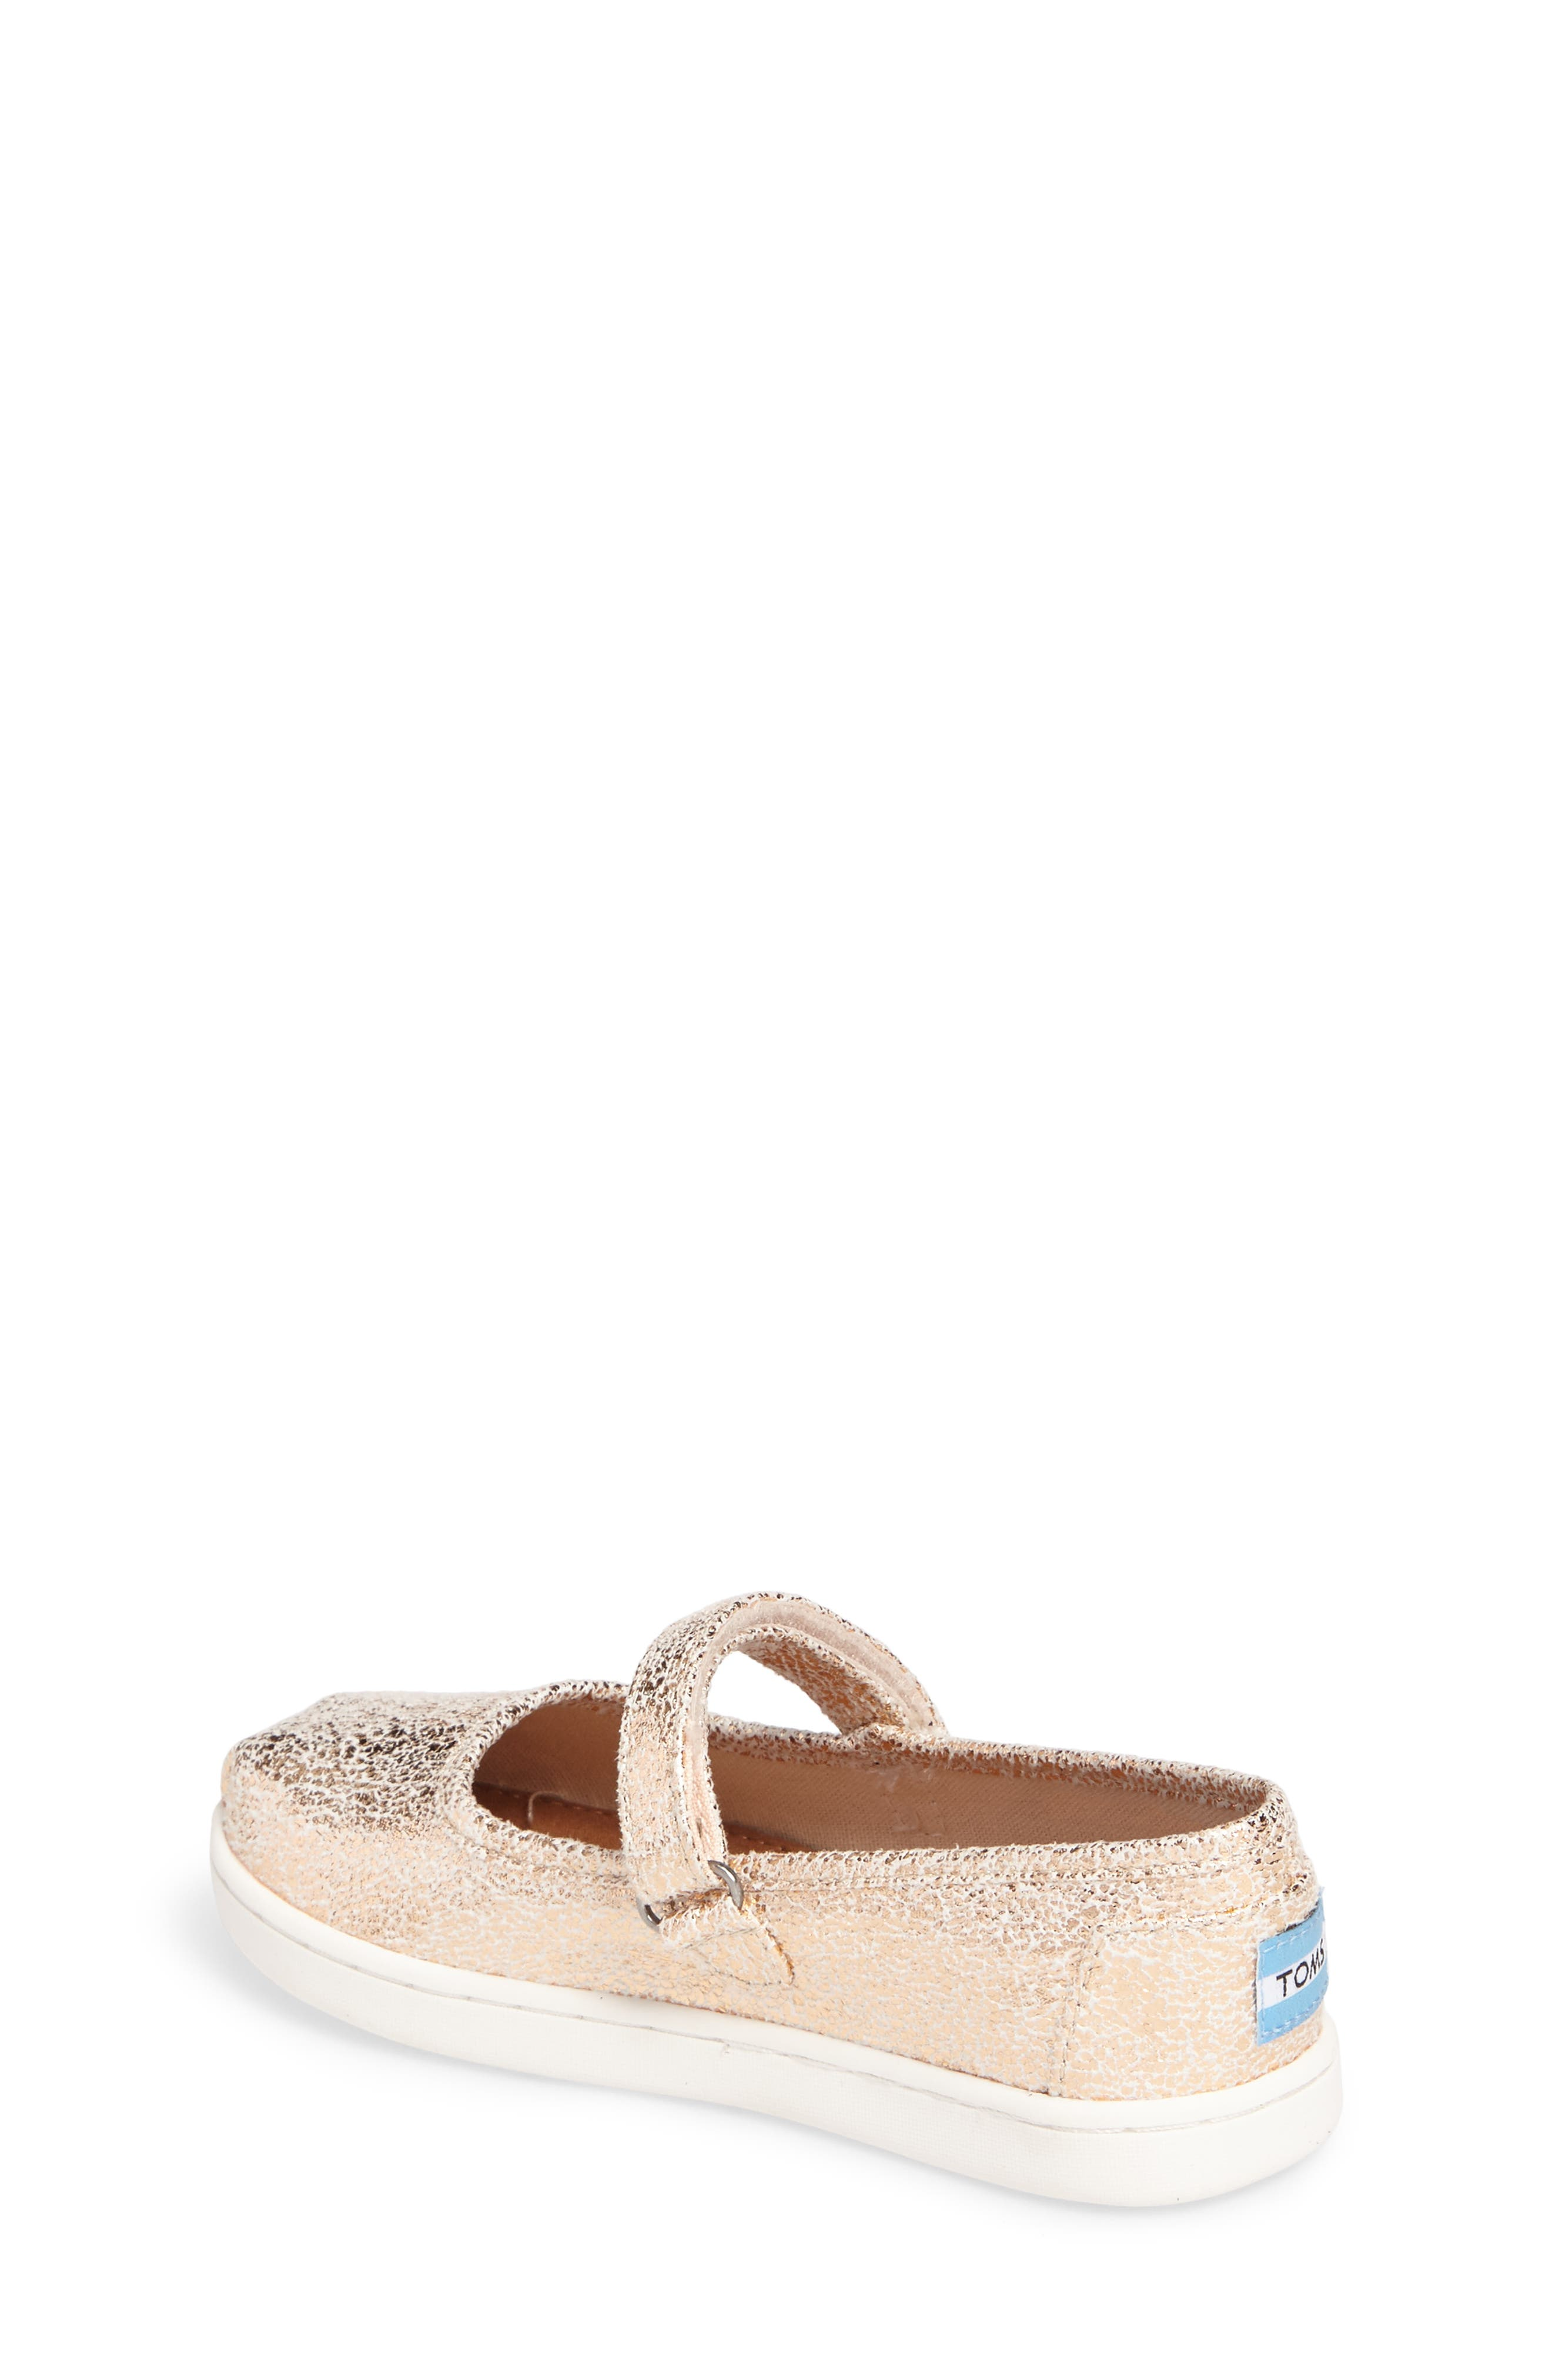 Alternate Image 2  - TOMS Tiny Mary Jane Flat (Baby, Walker & Toddler)